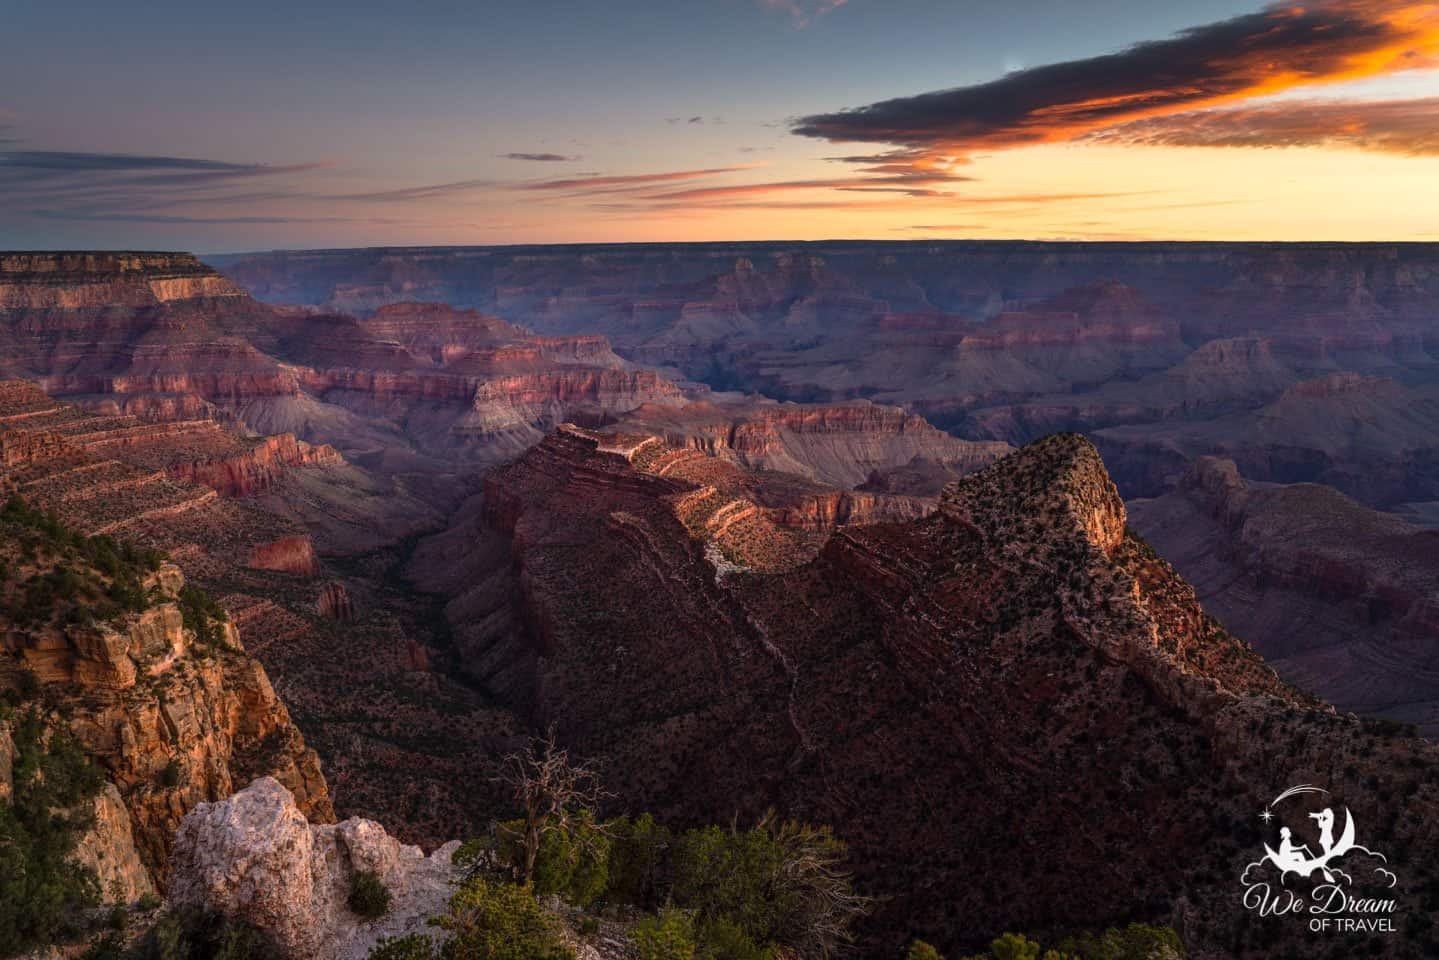 Morning is the best time to experience the Grand Canyon with beautiful light and less haze.